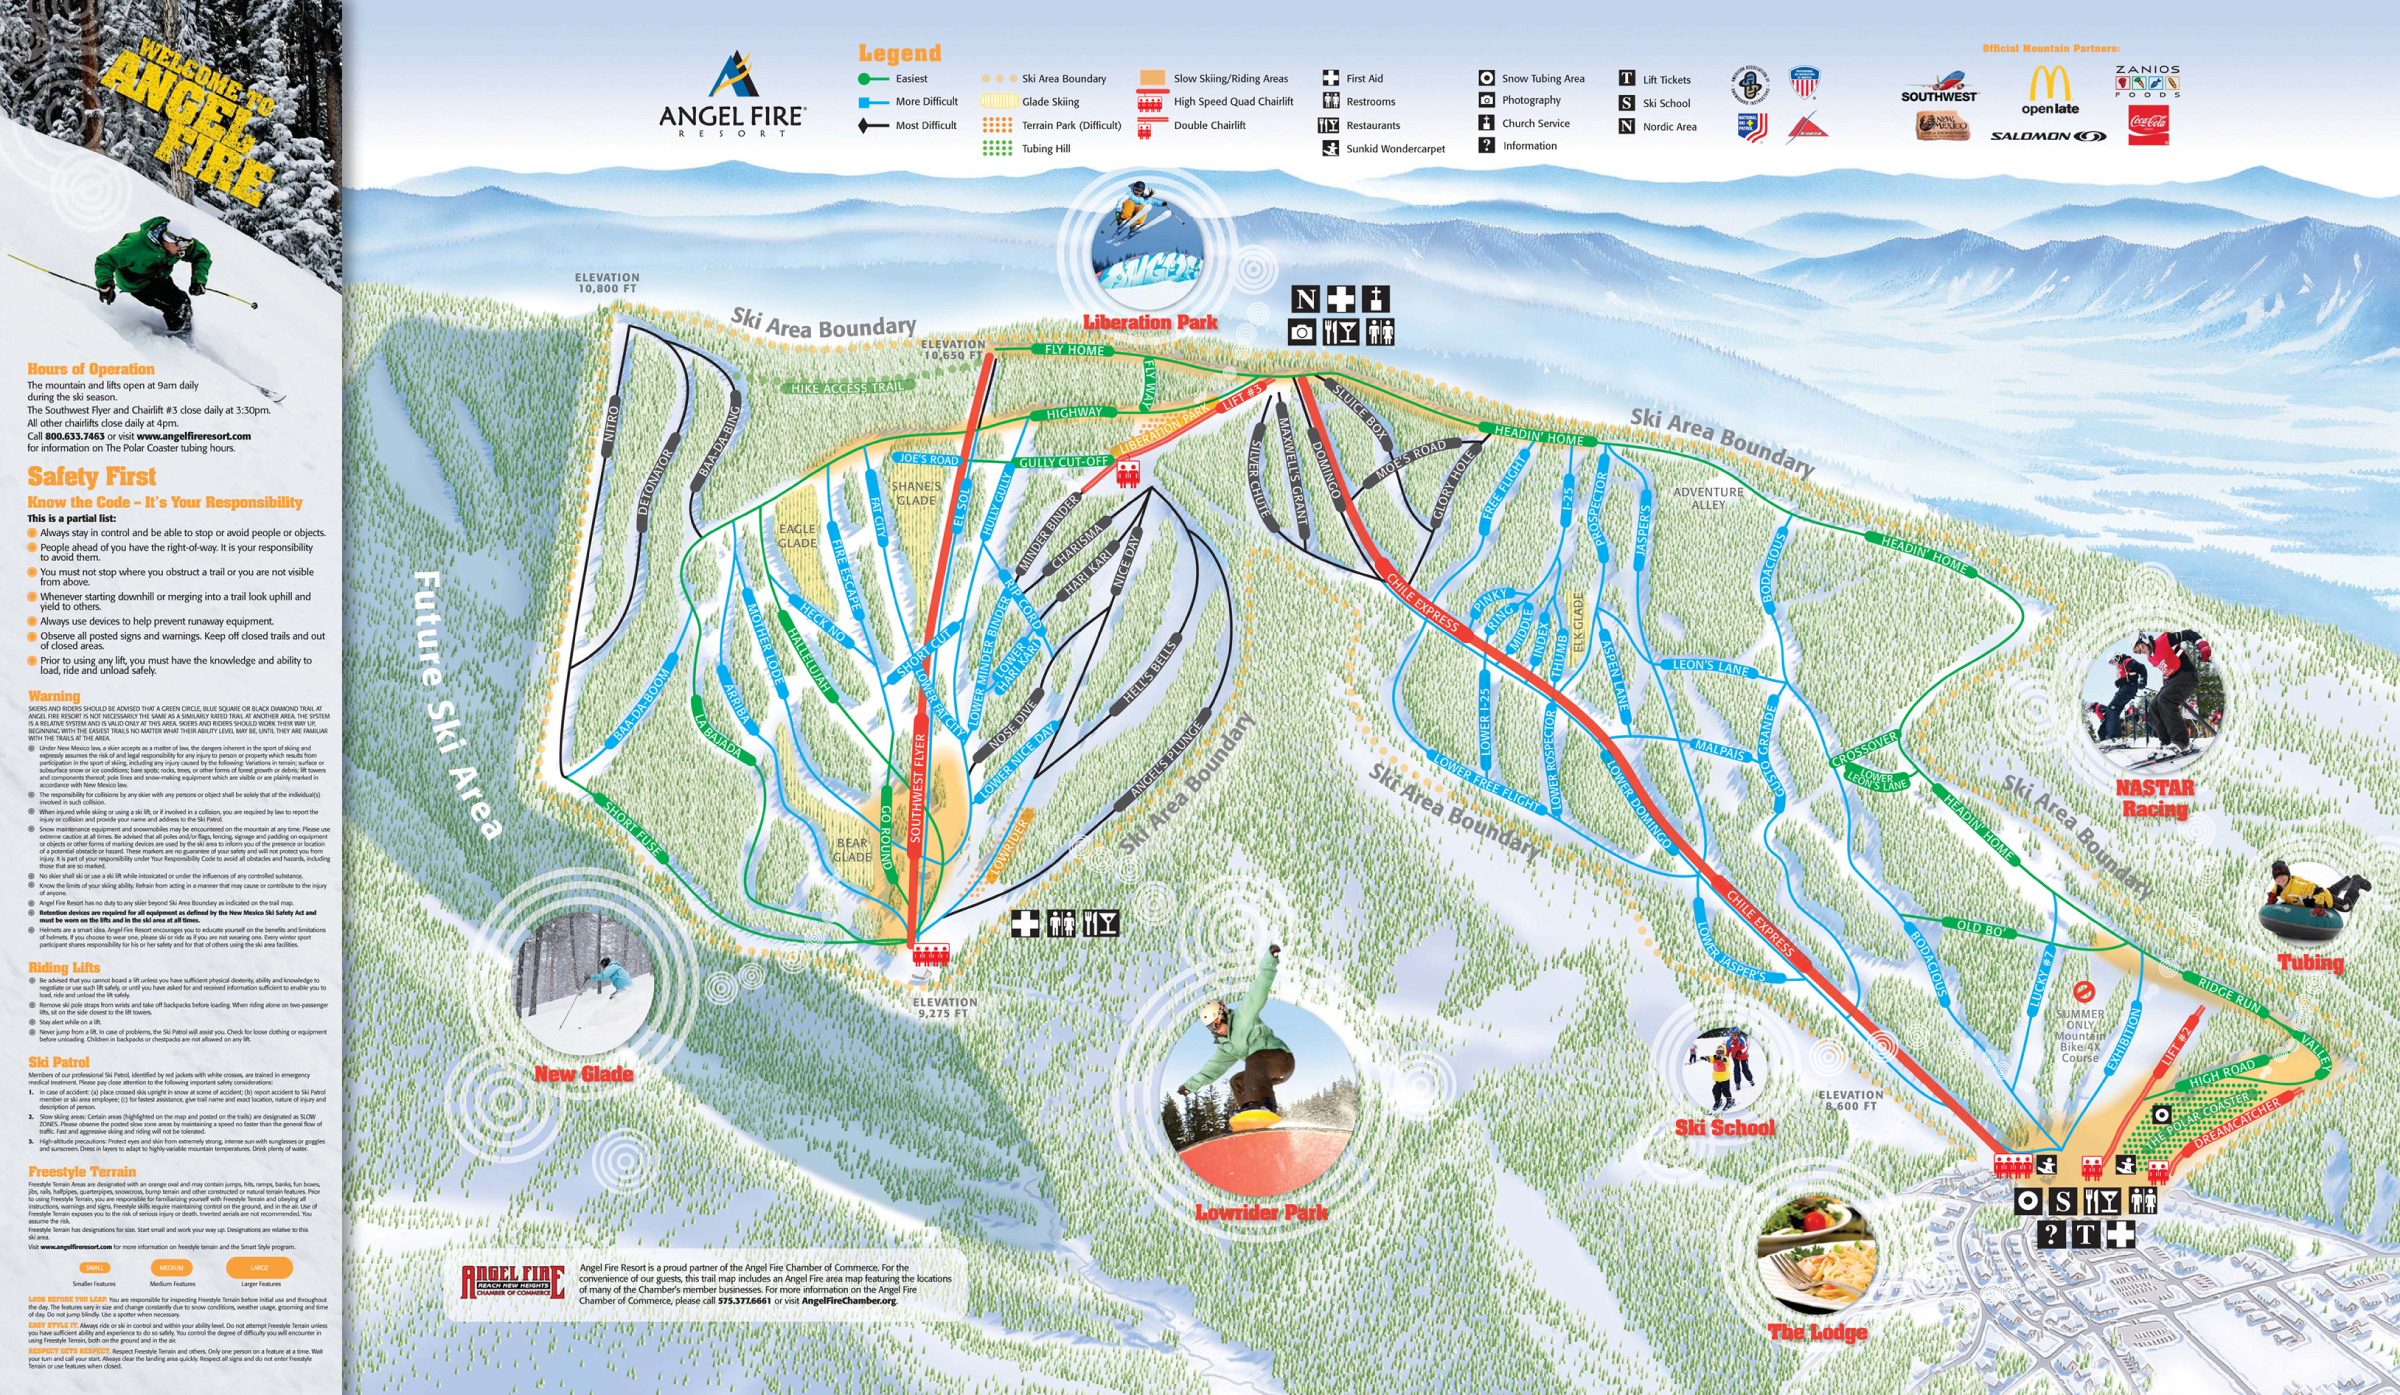 angel fire resort skimap